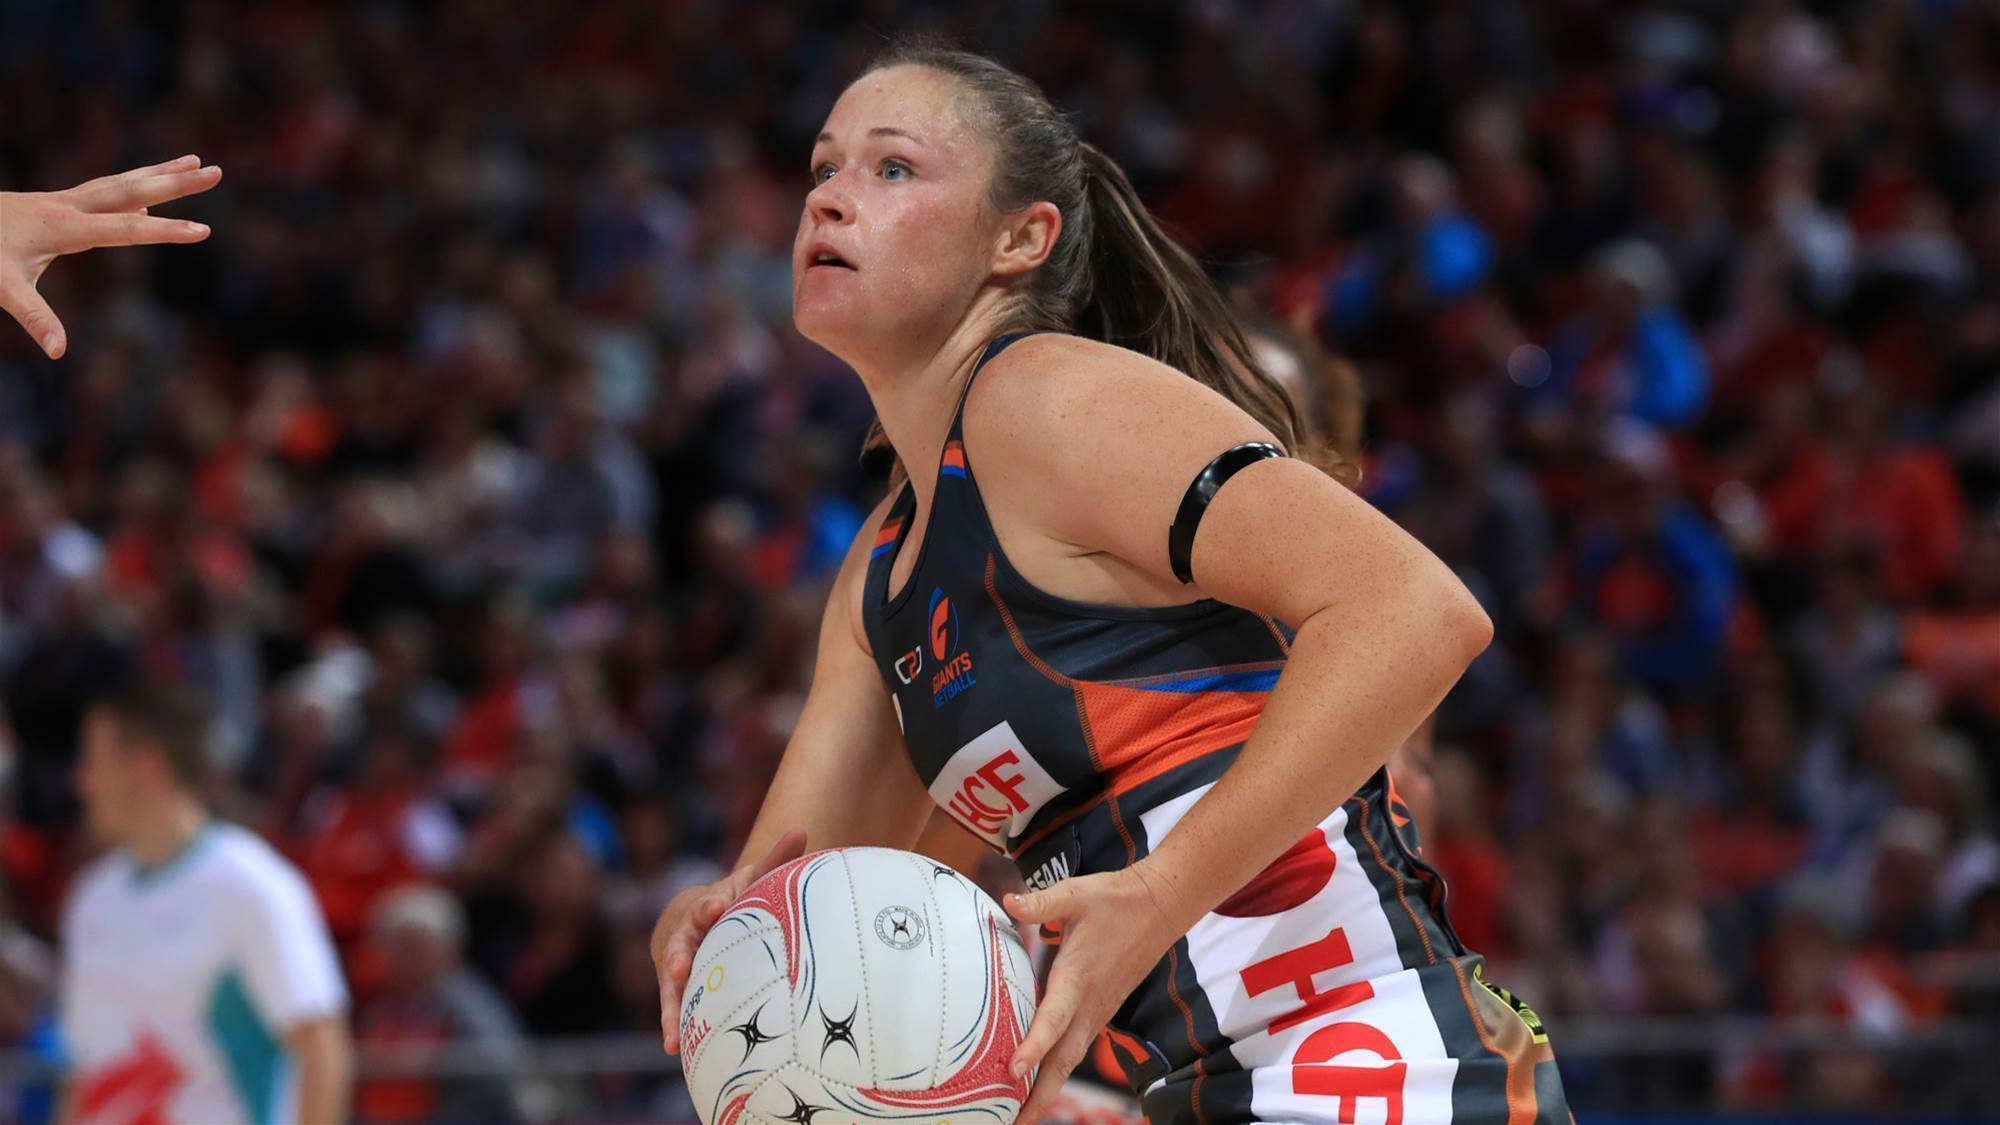 Pettitt: We want to play consistent netball